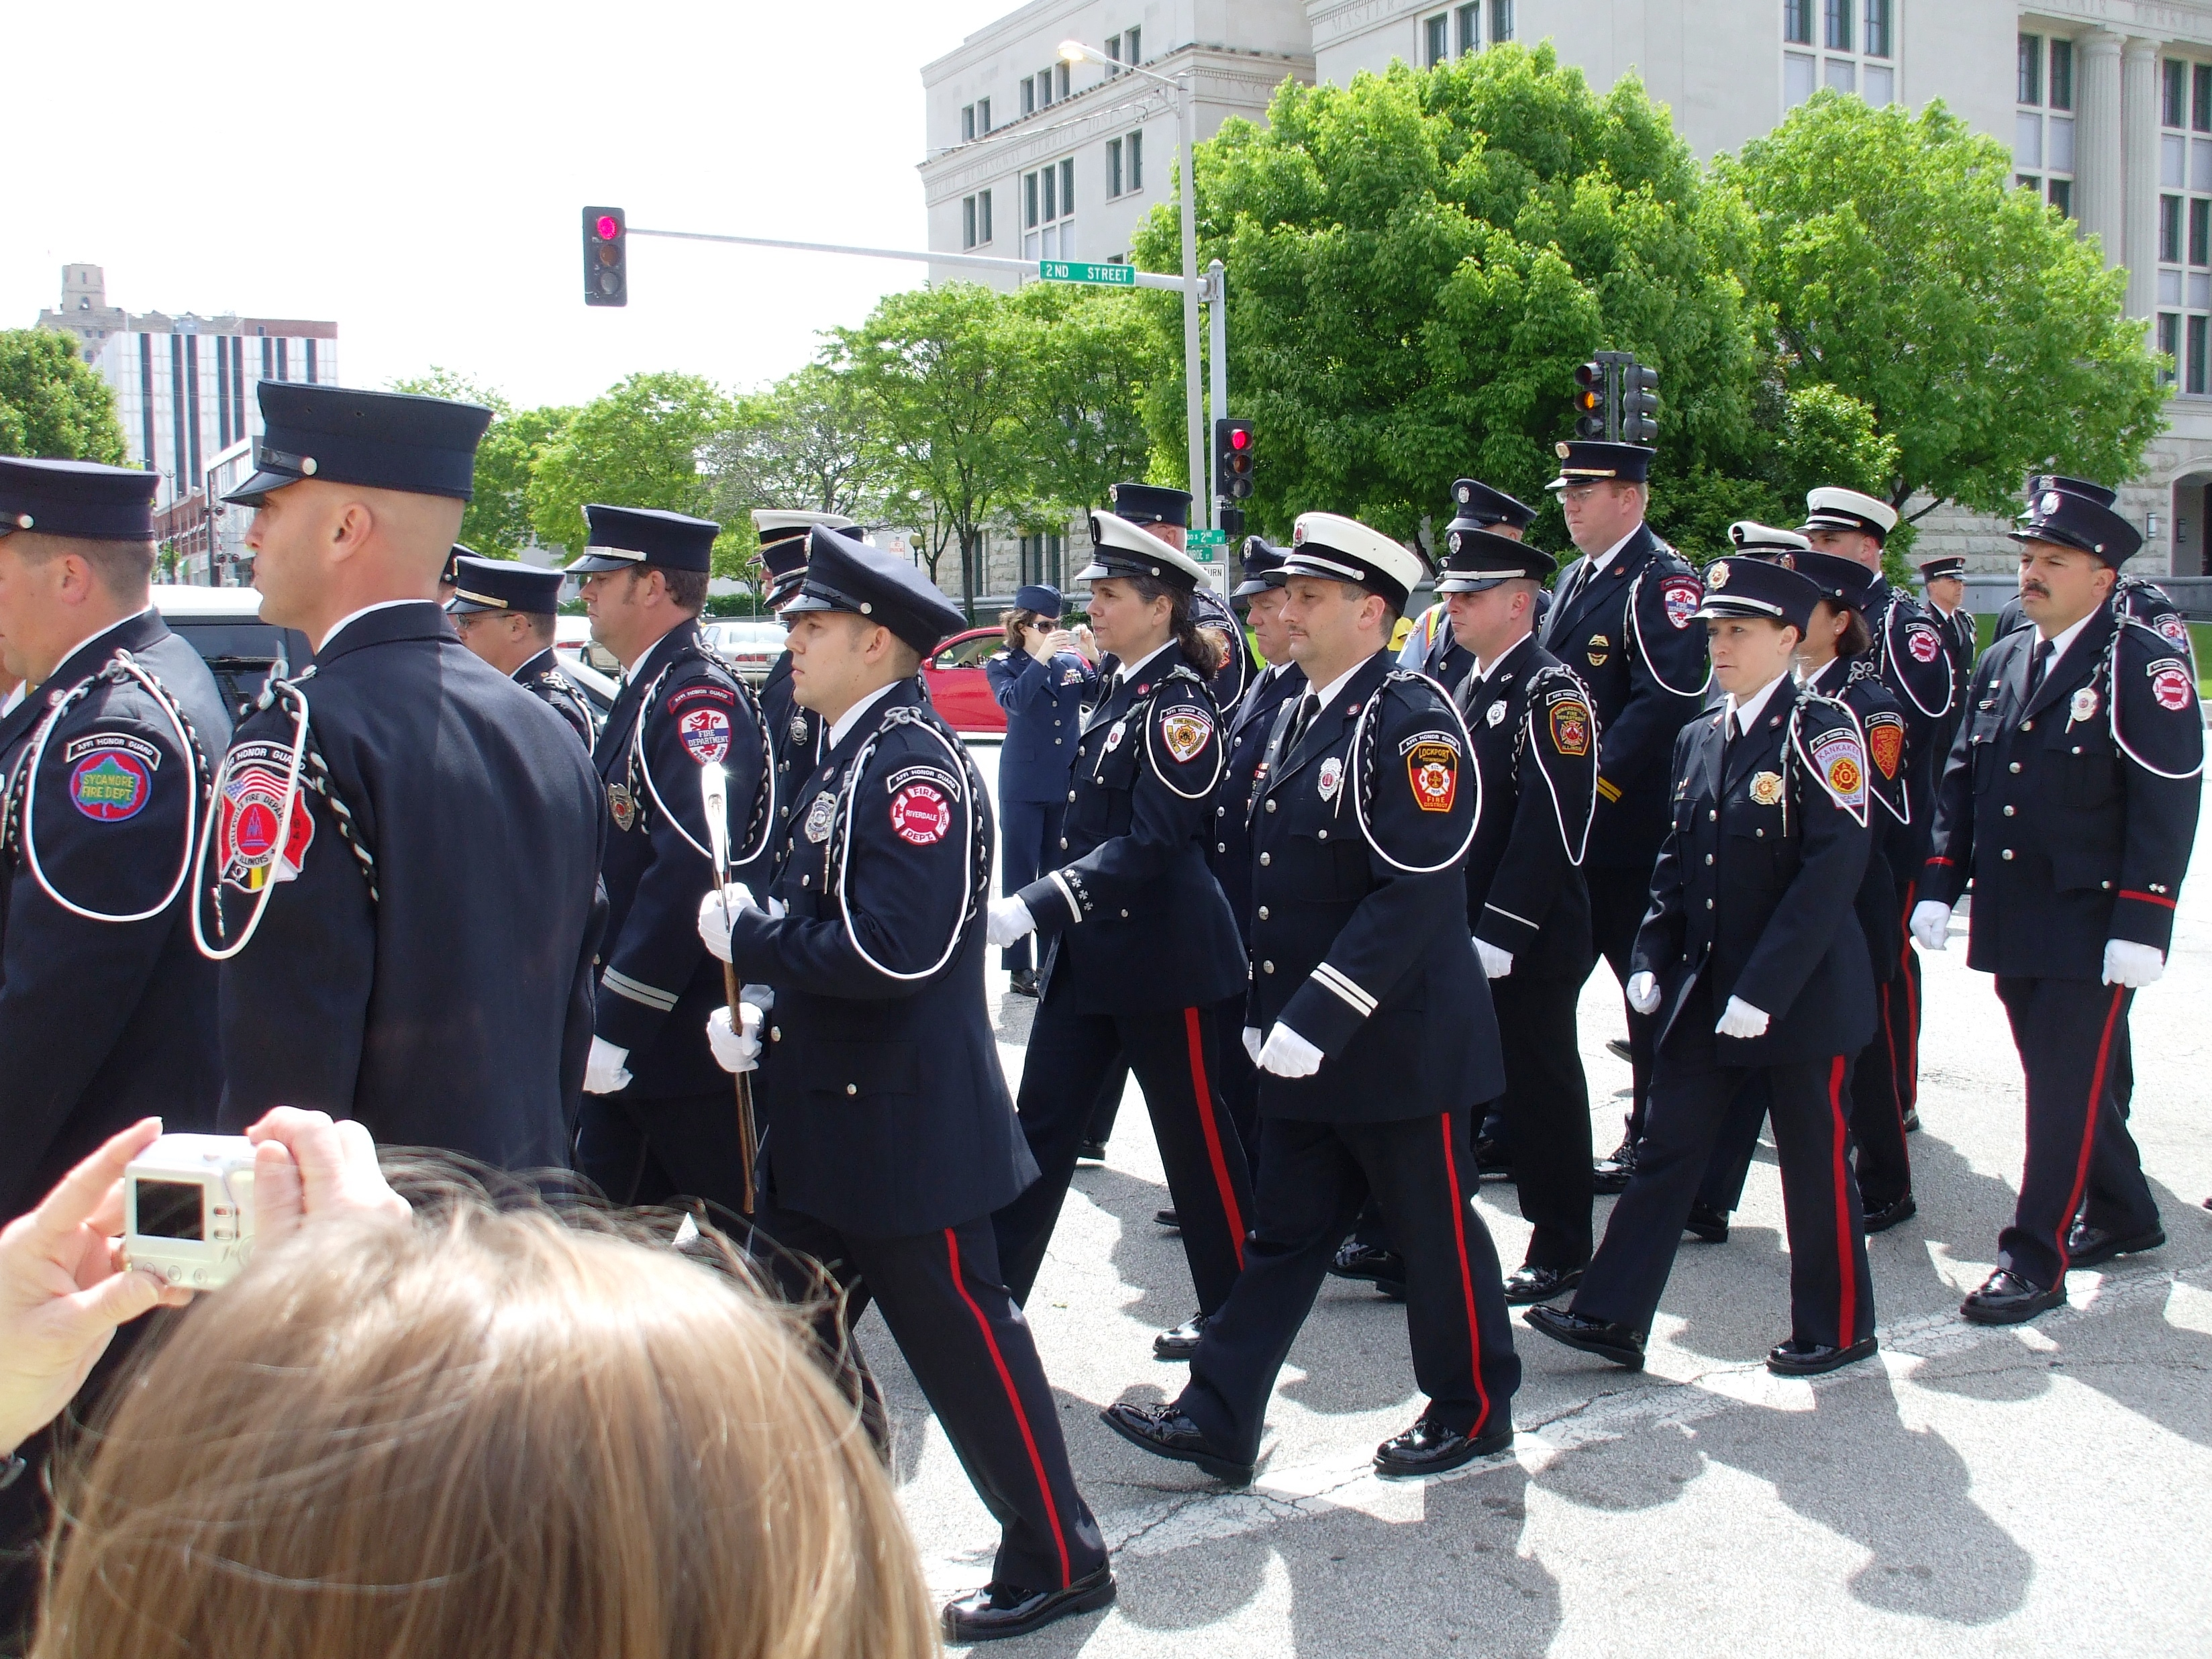 State of Illinois Fallen FF Memorial